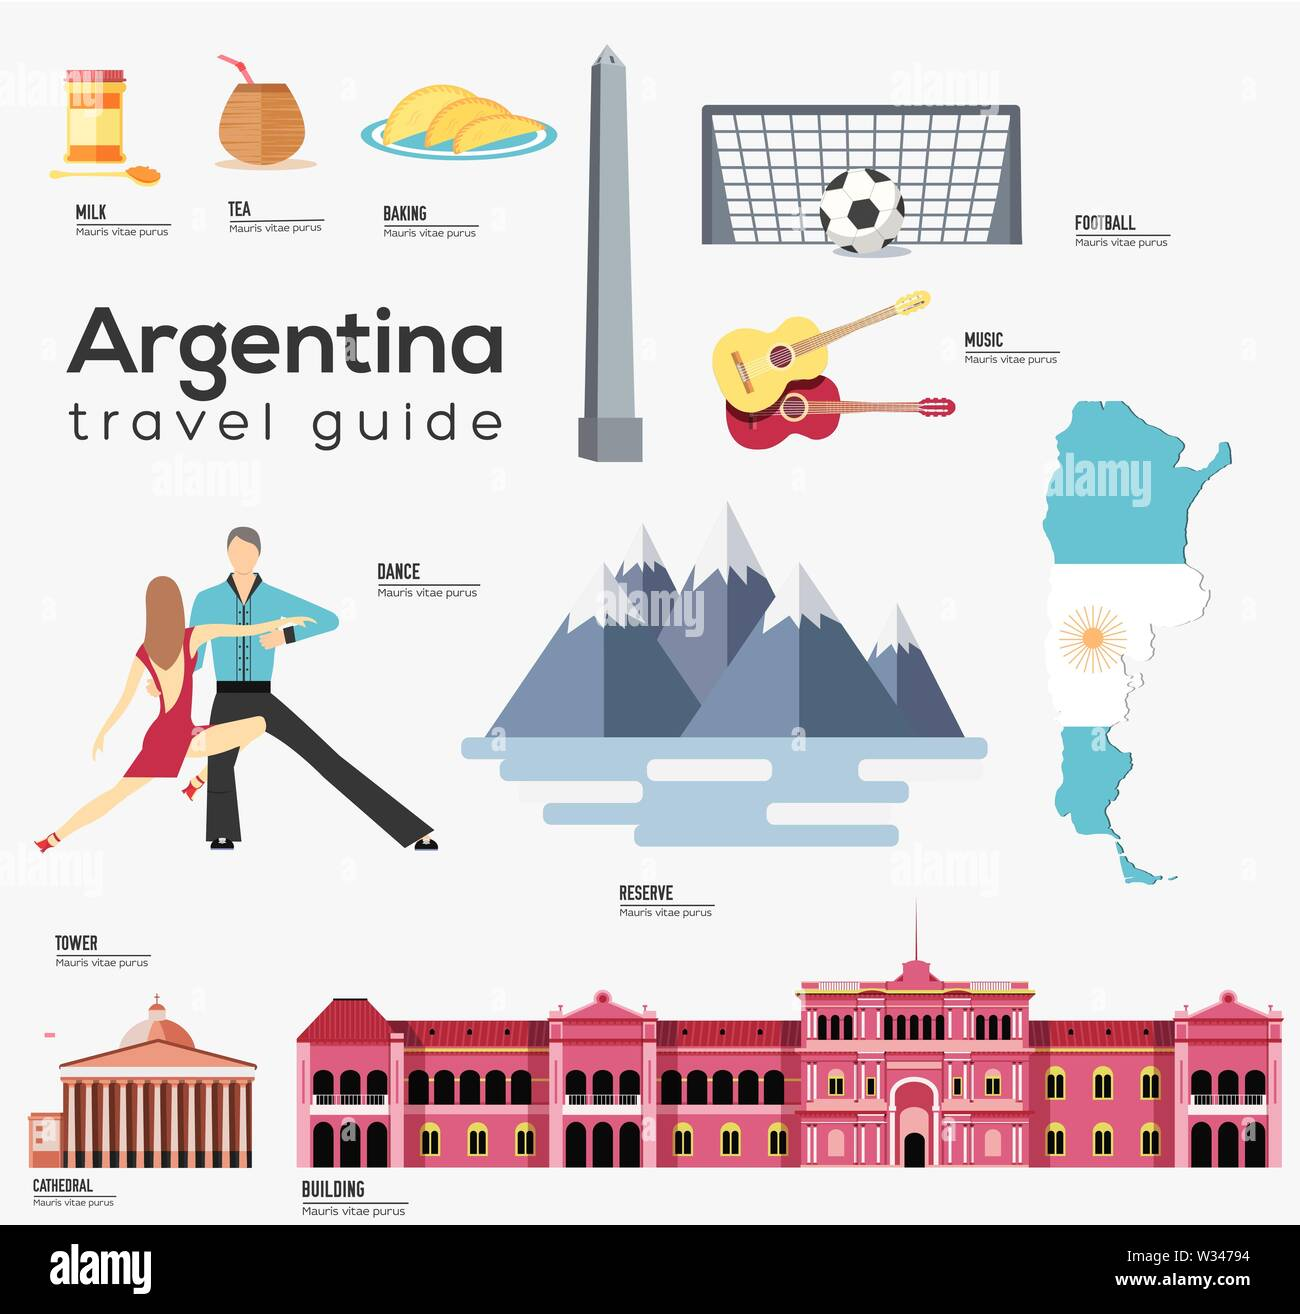 Argentina travel guide template. Set of argentinian landmarks, food flat icons, pictograms on white. Sightseeing attractions and cultural symbol vecto - Stock Image